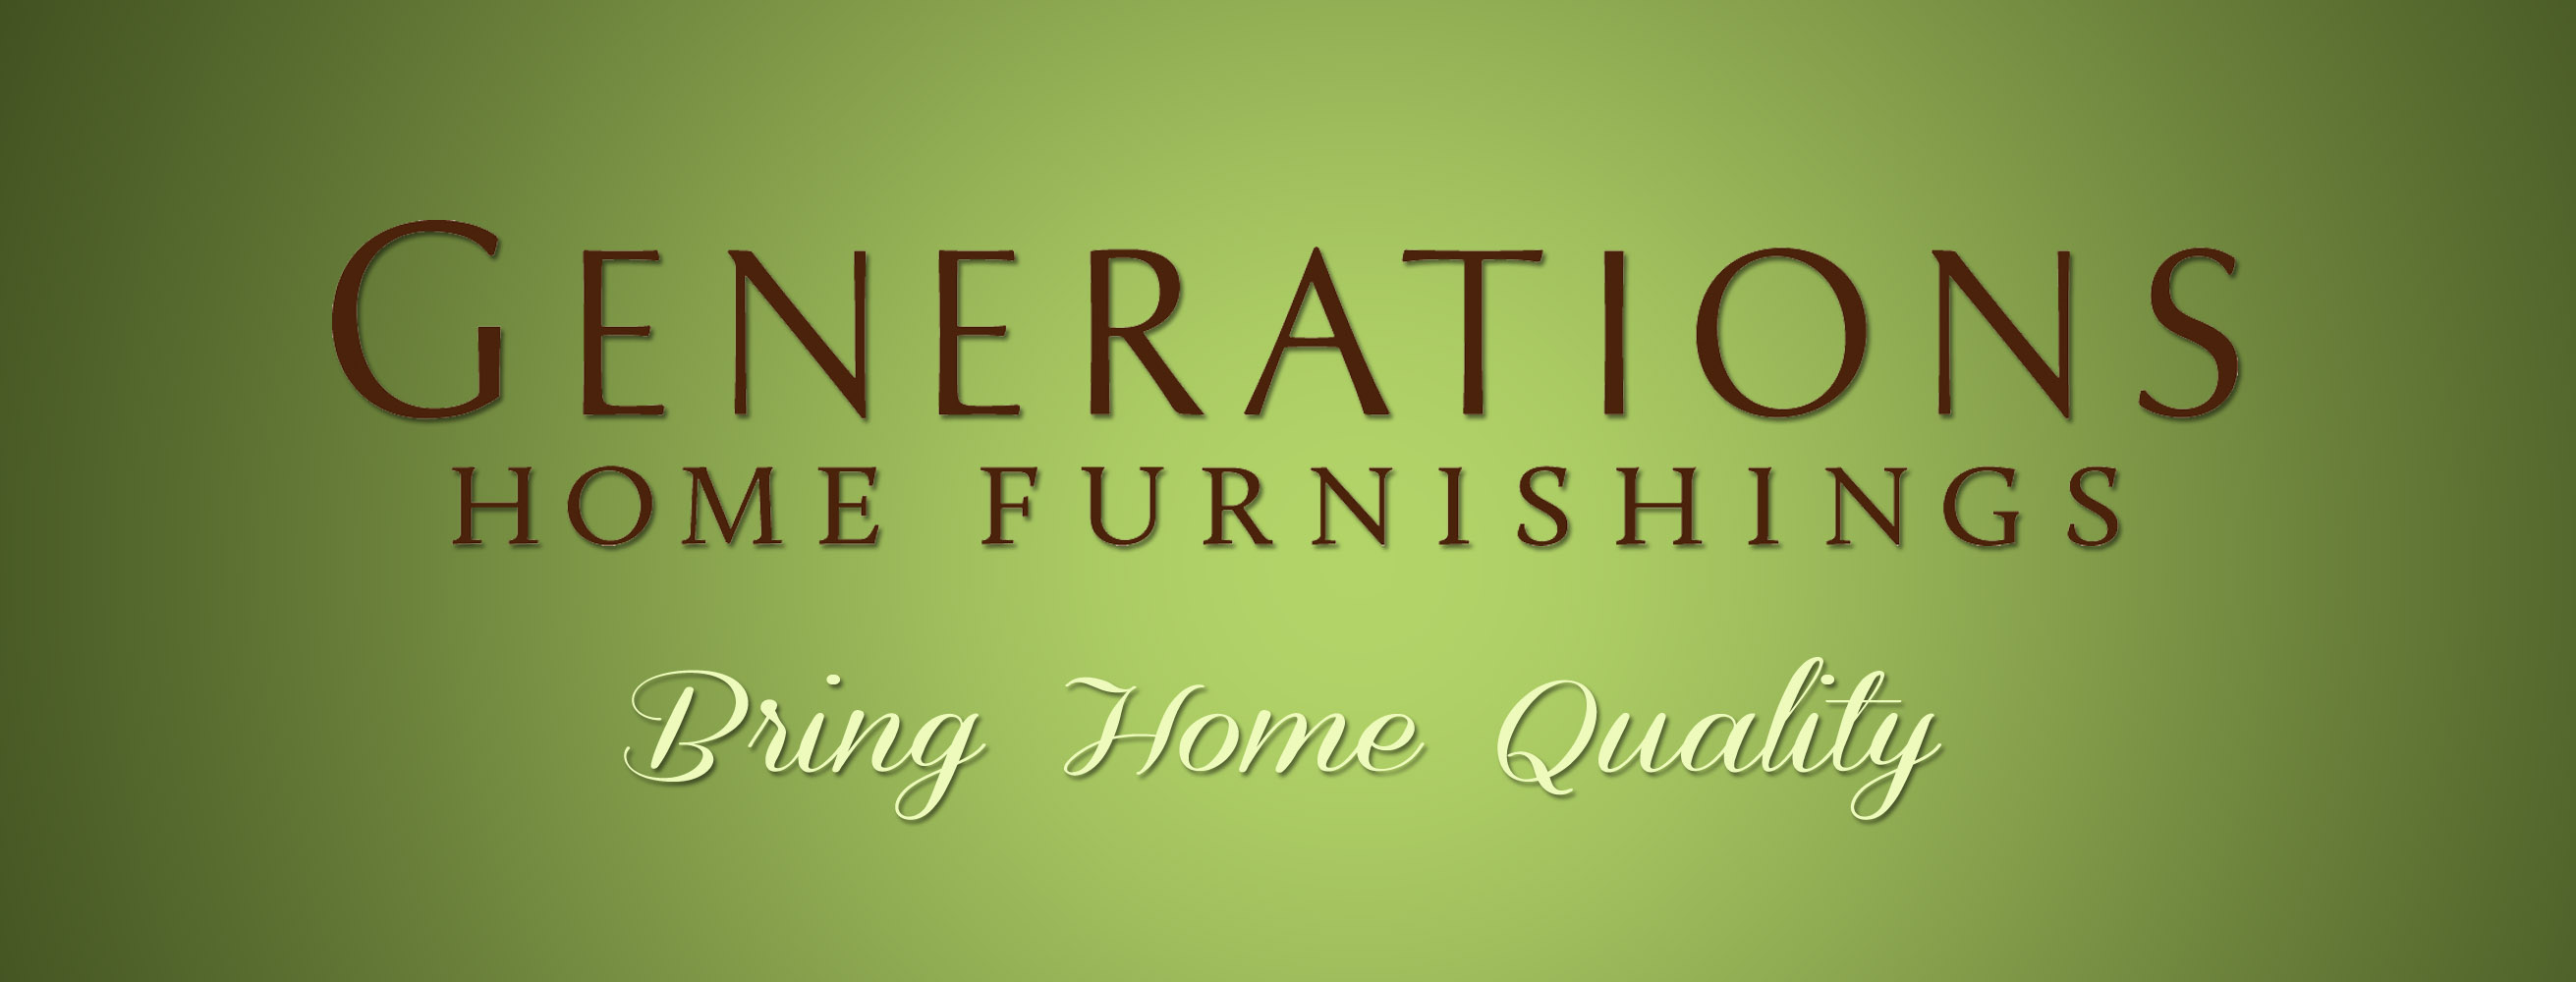 Generations Home Furnishings Bring Home Quality Furniture